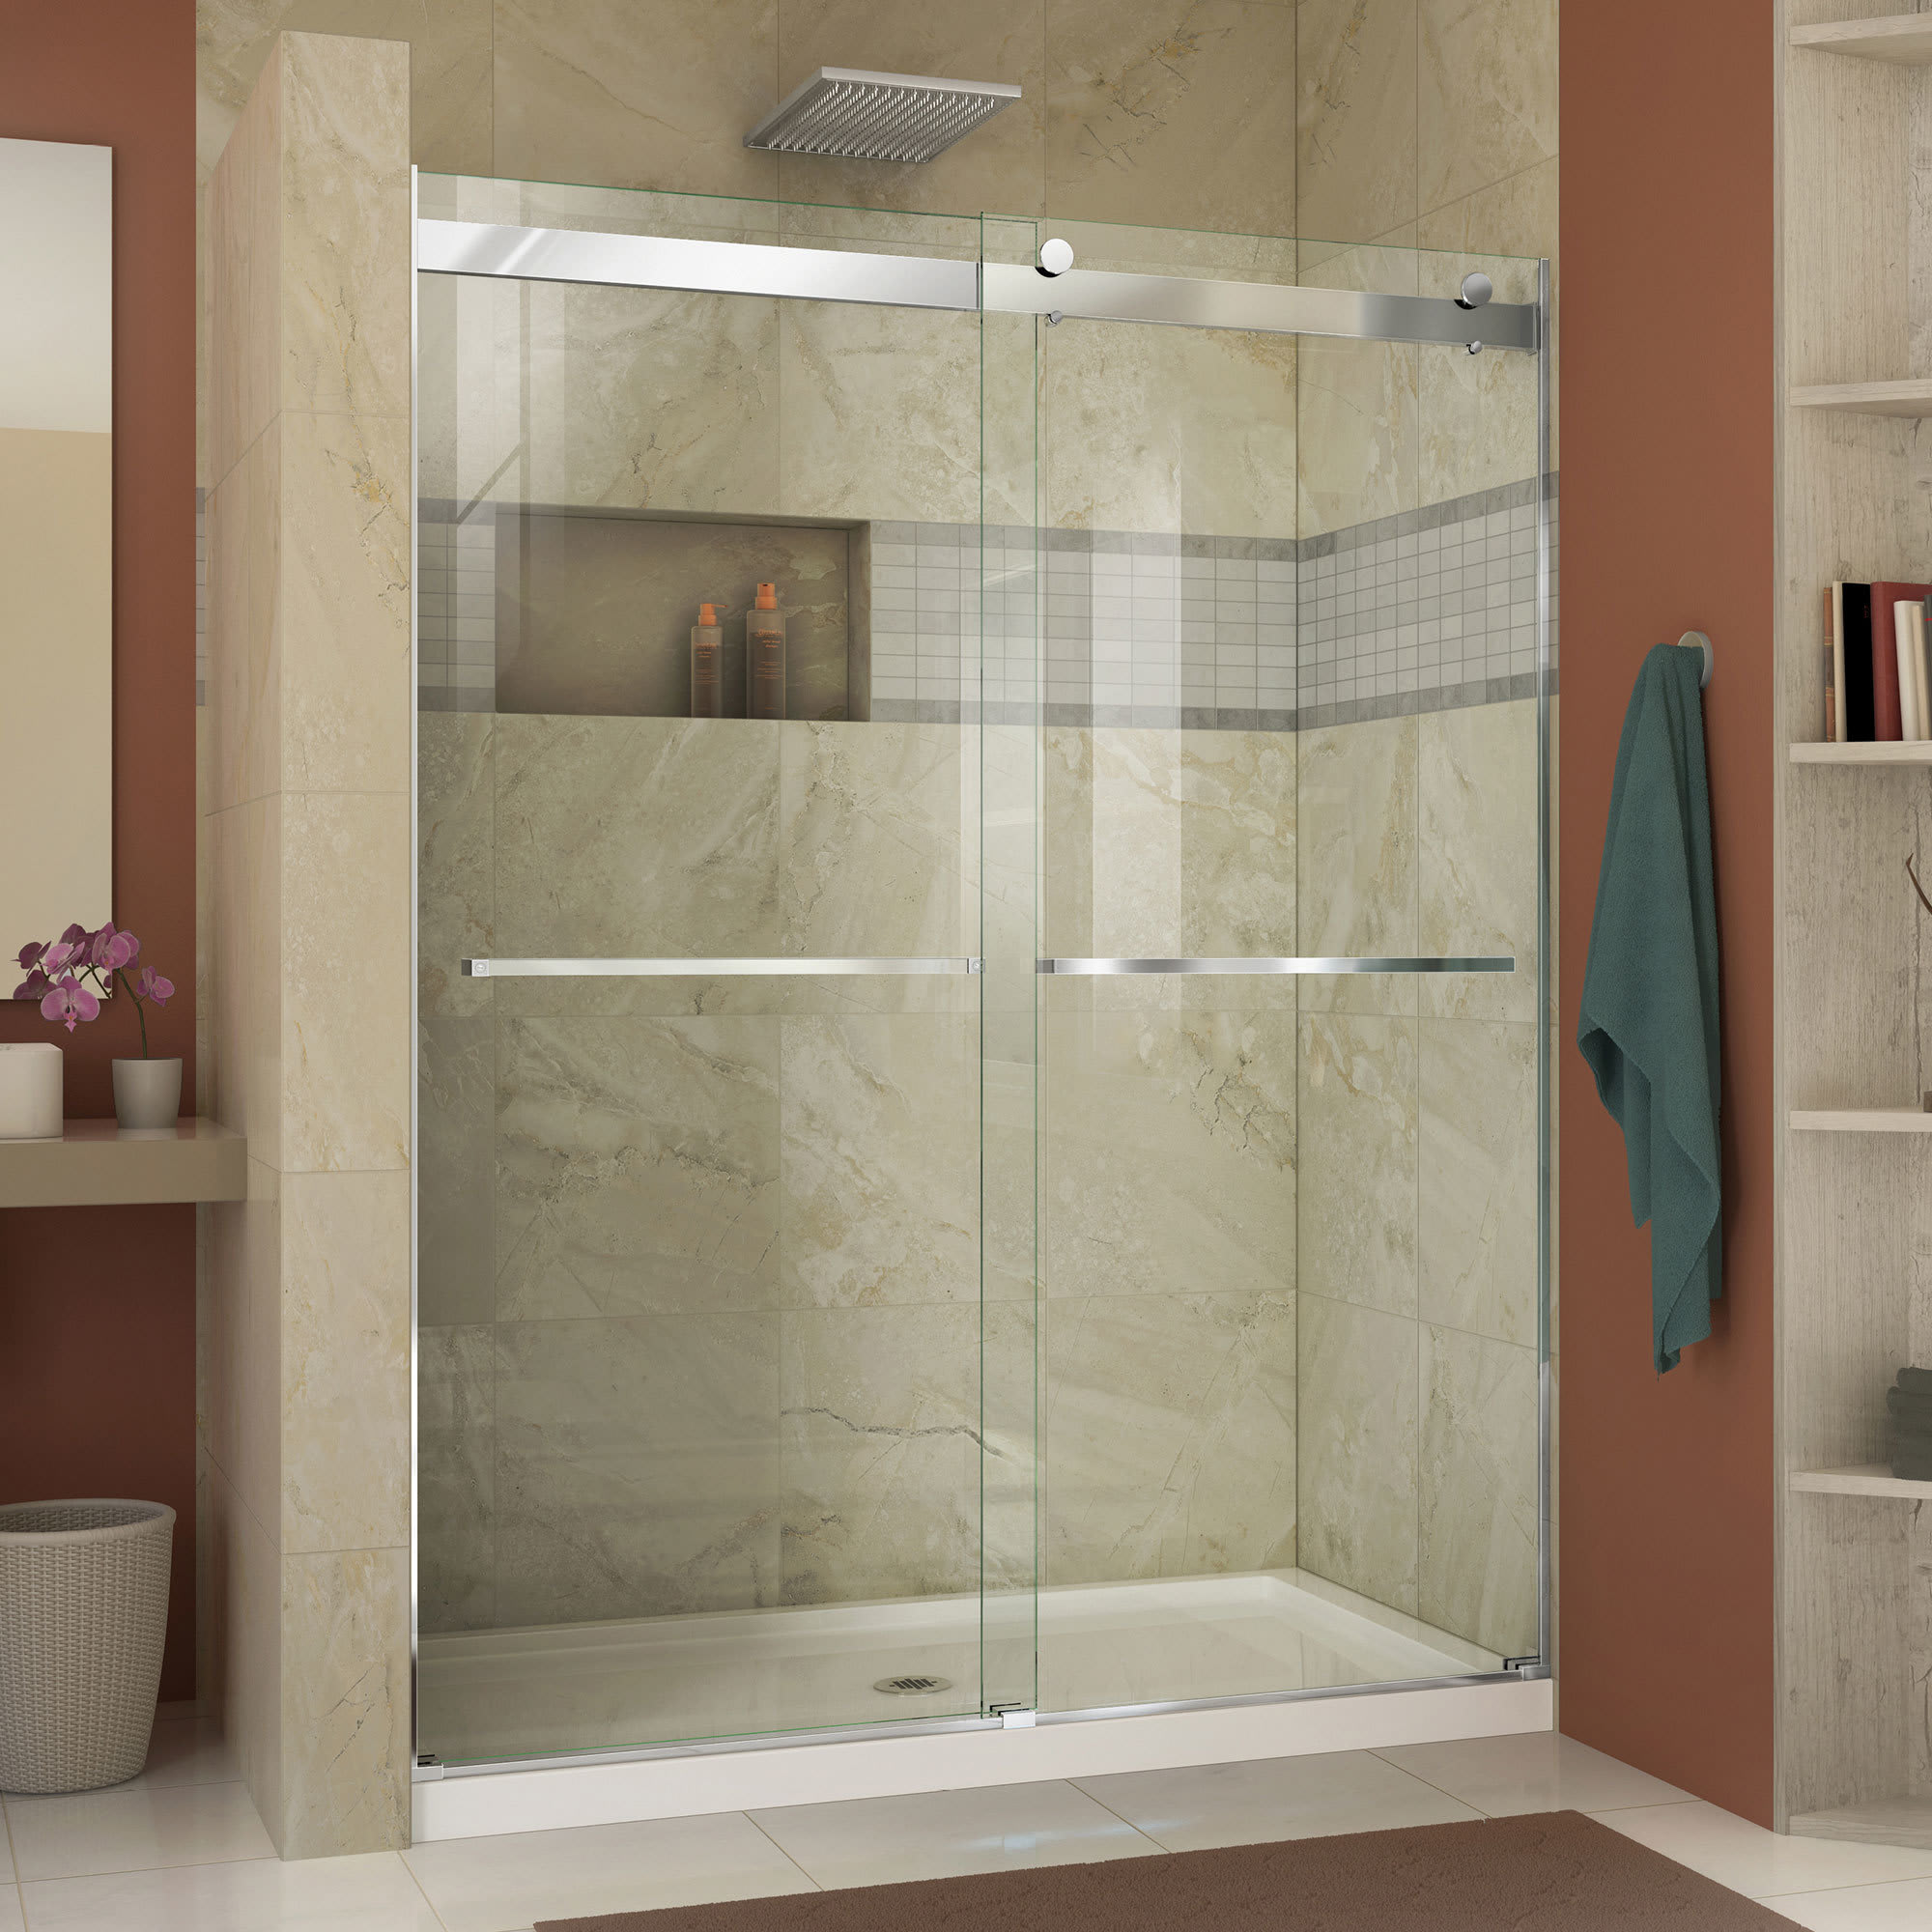 Shower Doors Glass Shower Doors Bathtub Doors Qualitybath